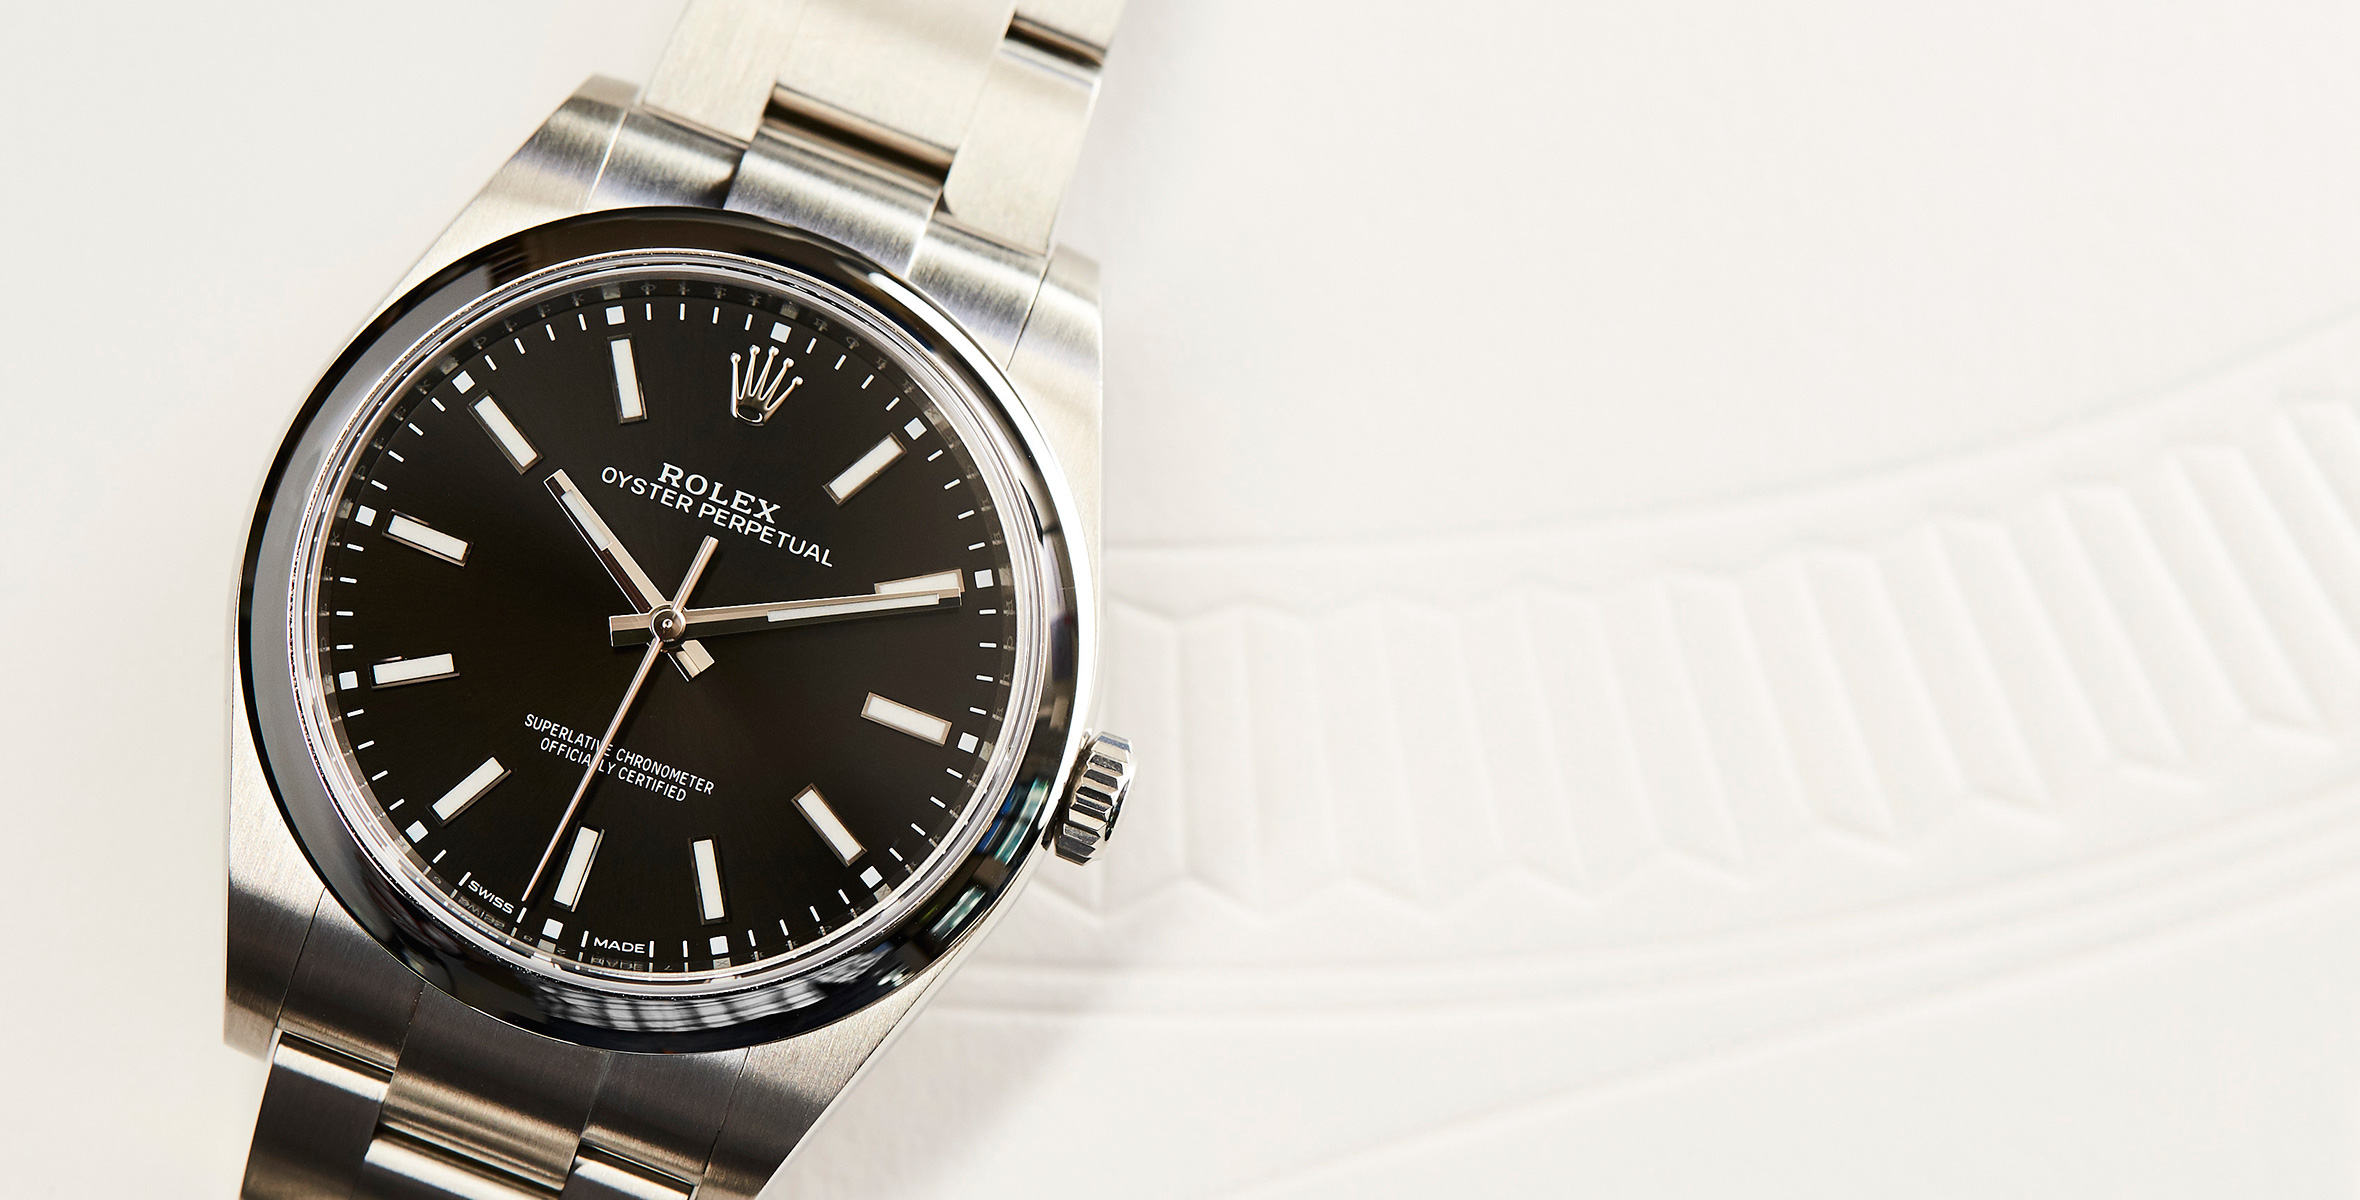 Hands On A Classic In Its Purest Form The Rolex Oyster Perpetual